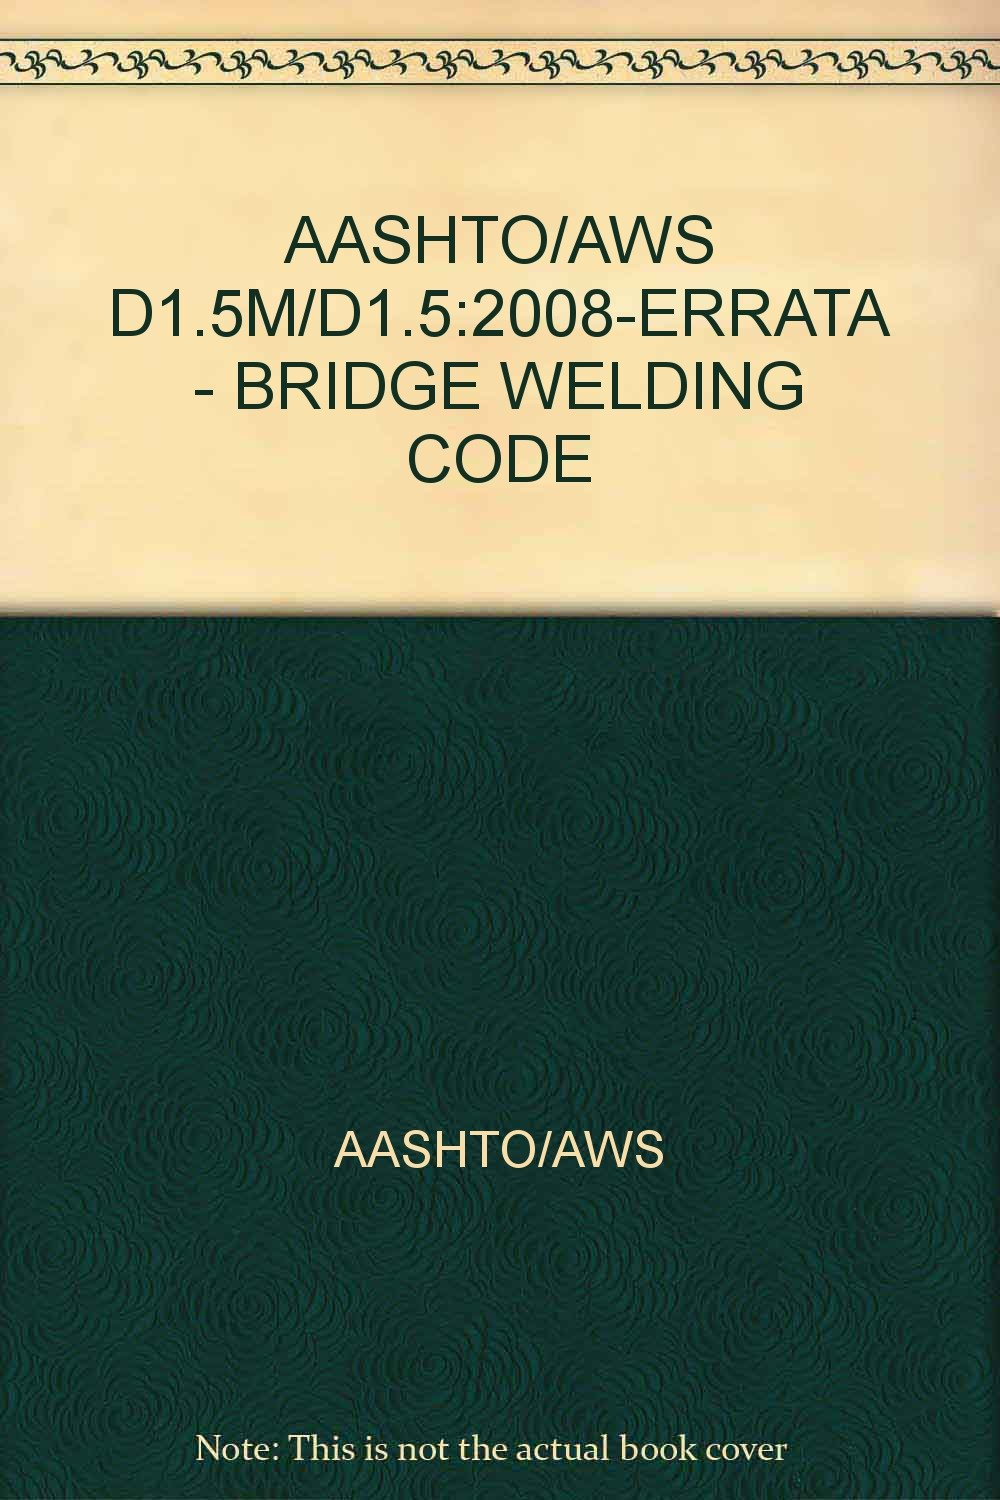 Read Online AASHTO/AWS D1.5M/D1.5:2008; BRIDGE WELDING CODE ebook